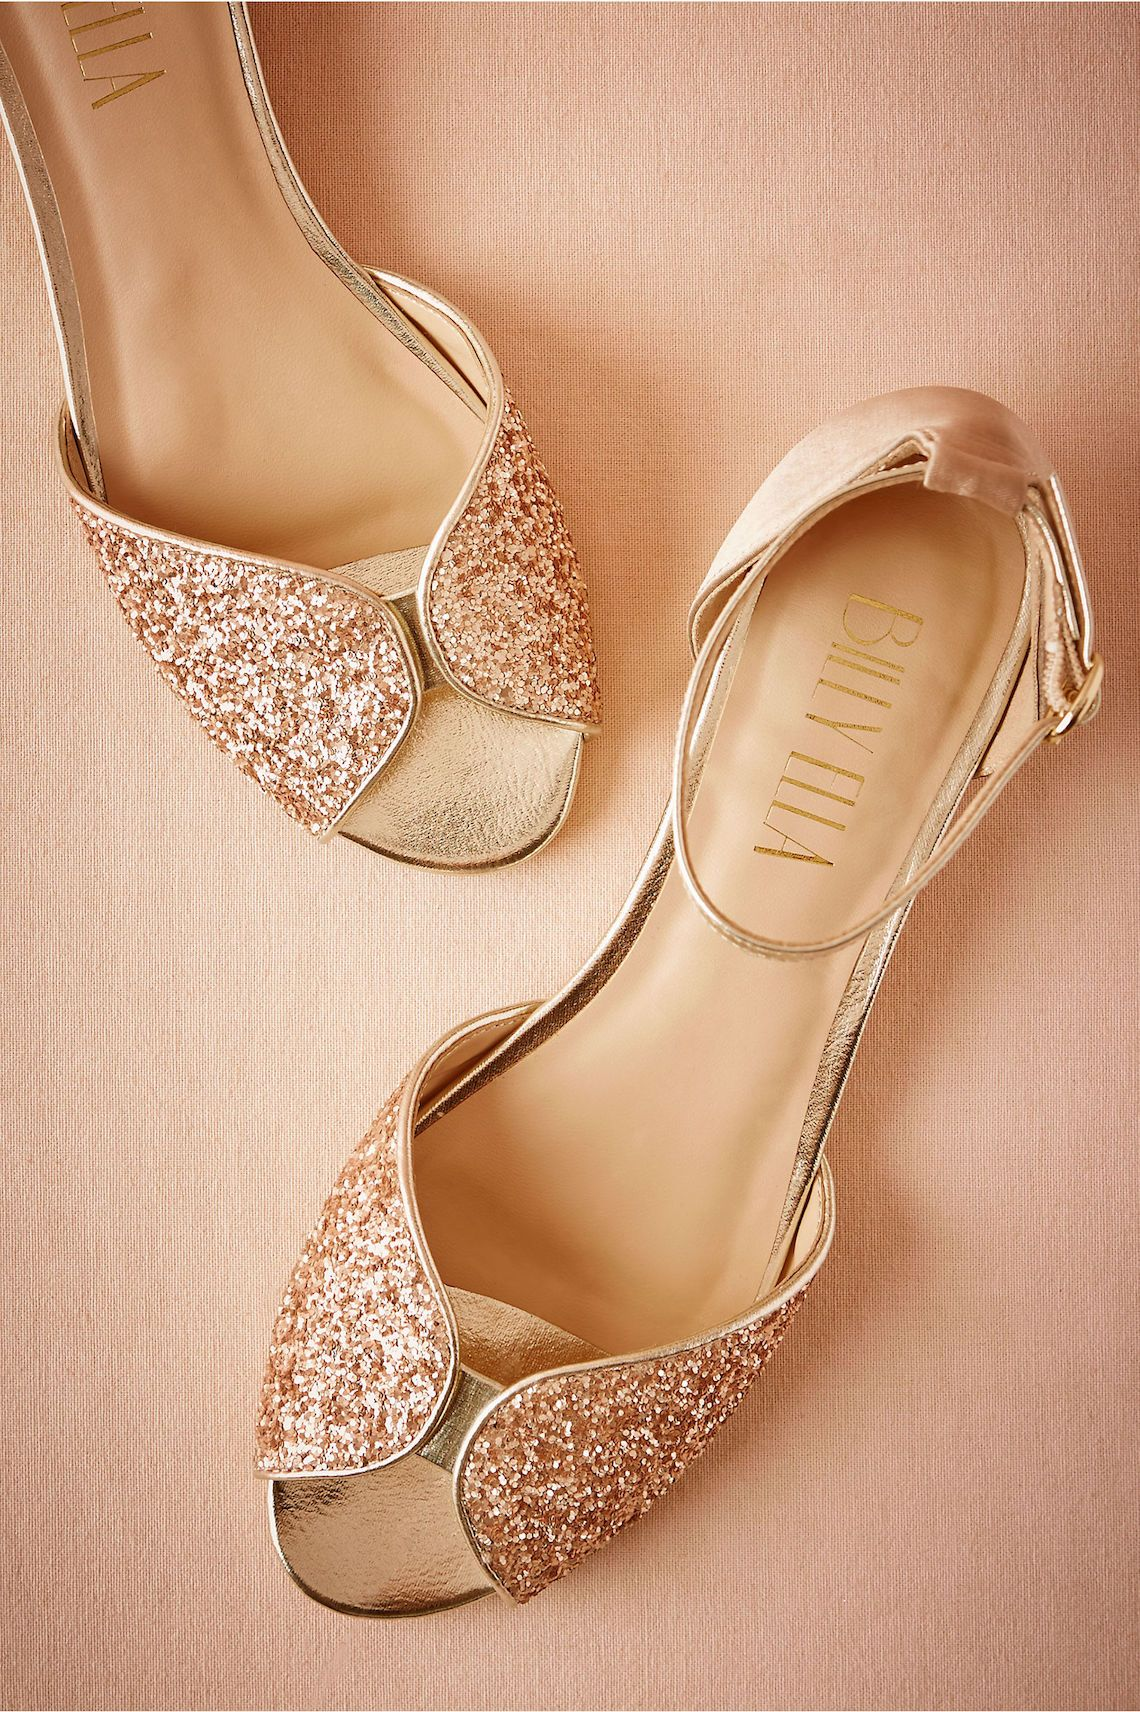 10 Flat Wedding Shoes (That Are Just As Chic As Heels)  c21363f5e822